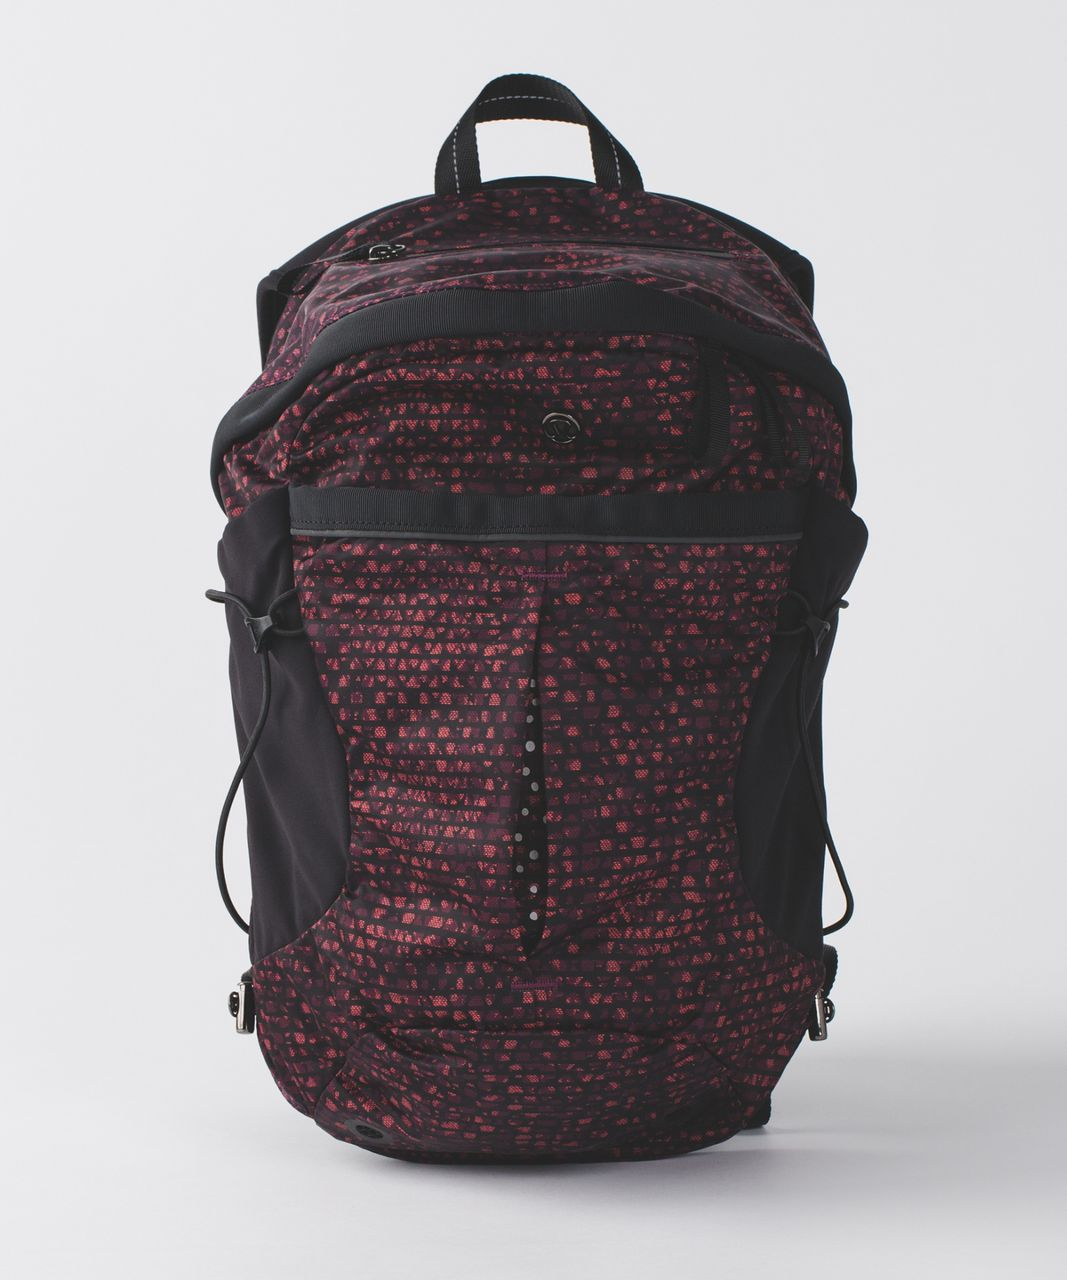 7e92d9861a Lululemon Run All Day Backpack - Shatter Weave Dust Coral Plum   Black -  lulu fanatics